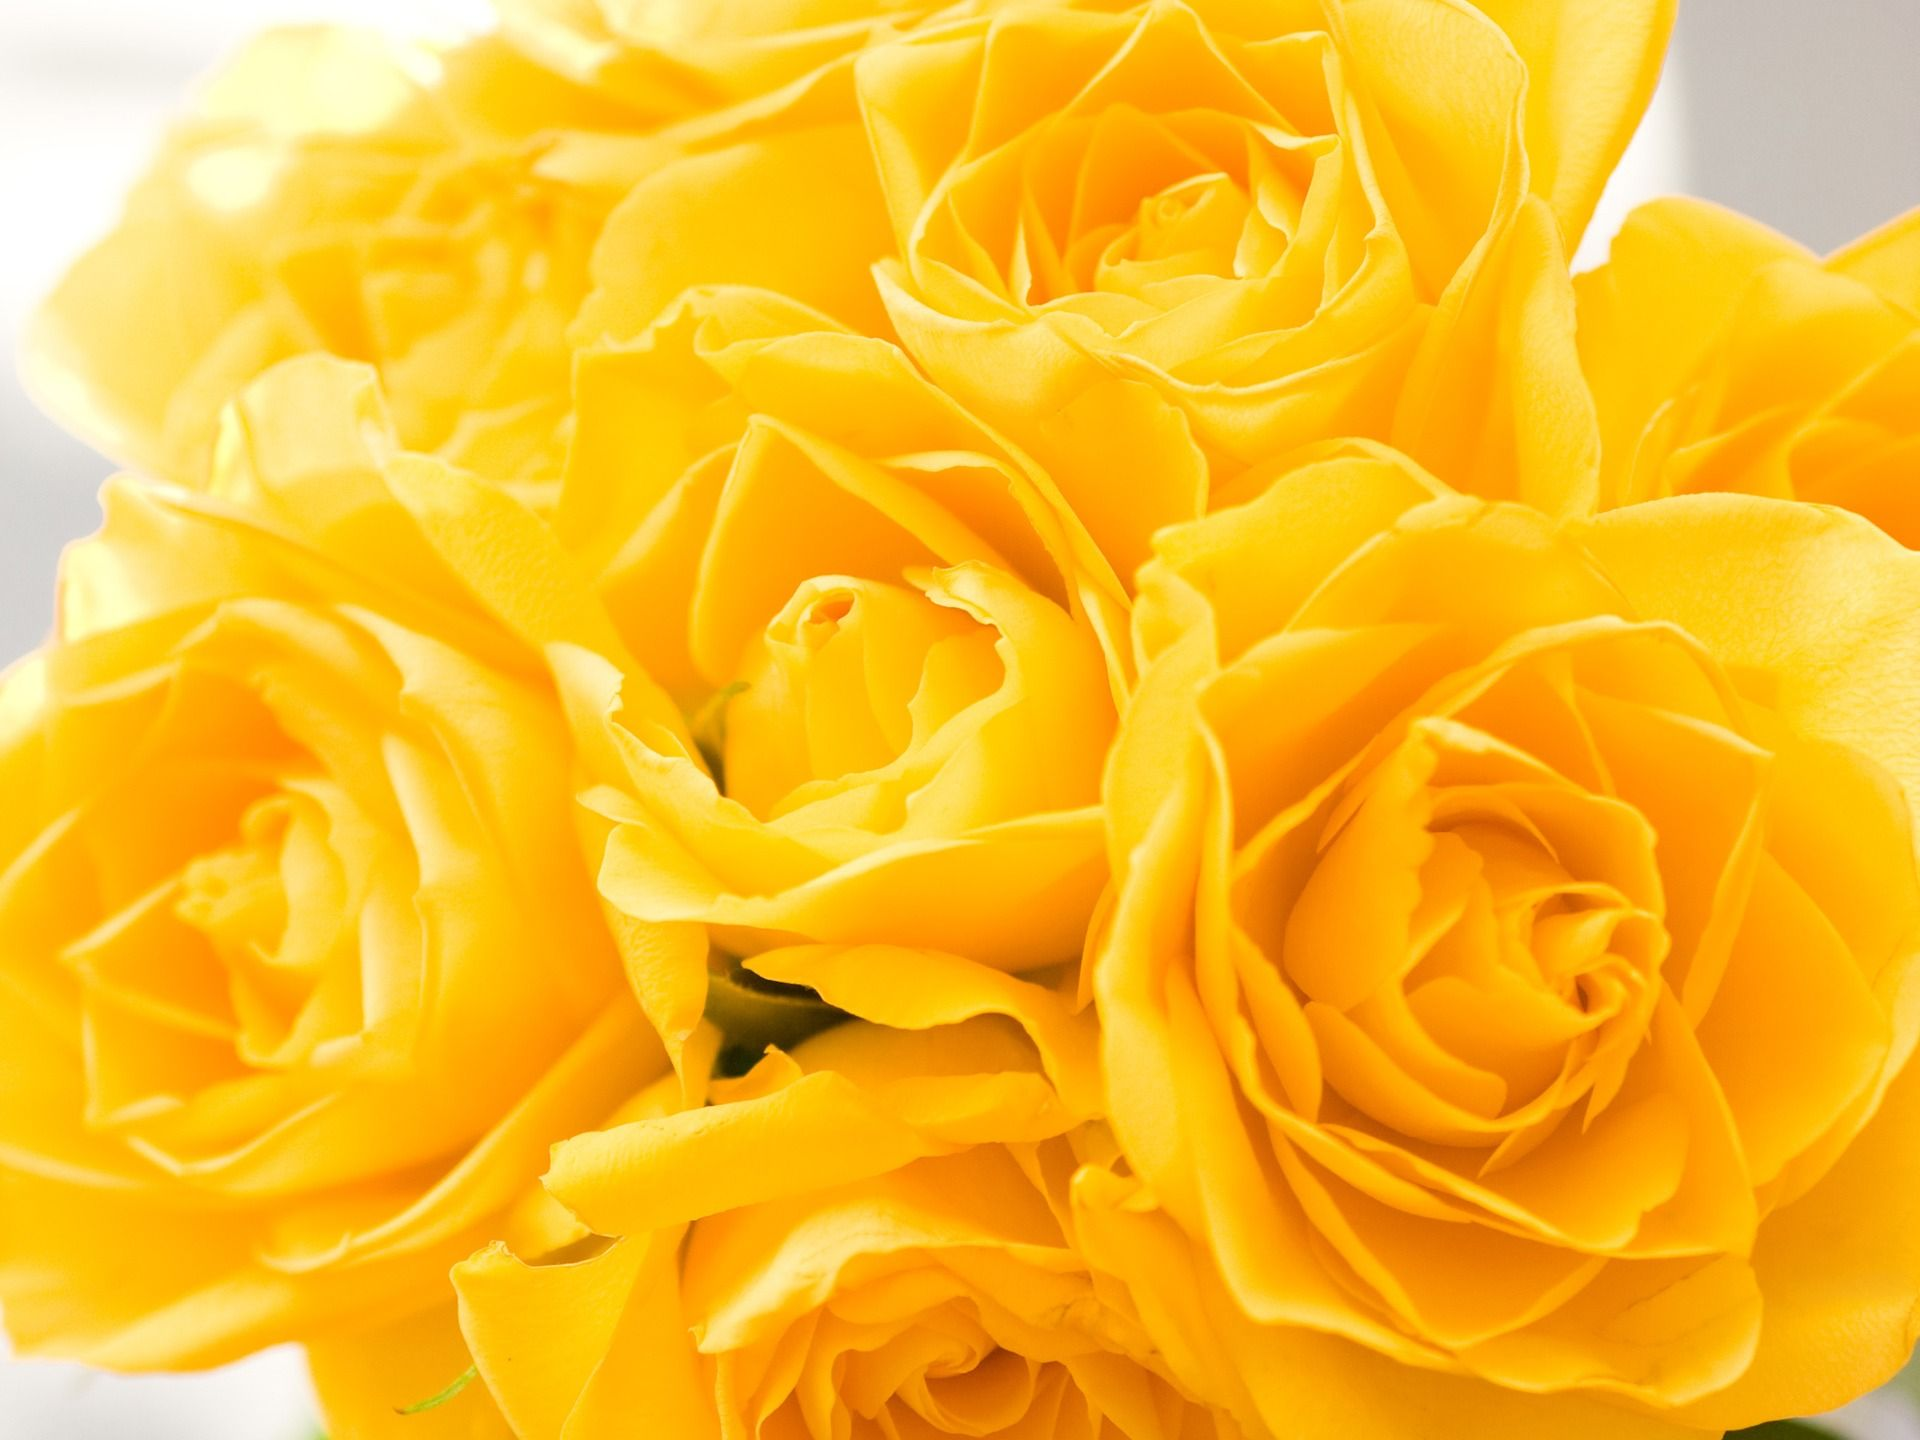 Image Detail For Yellow Roses 1920 X 1440 Wallpaper Ewallpapers